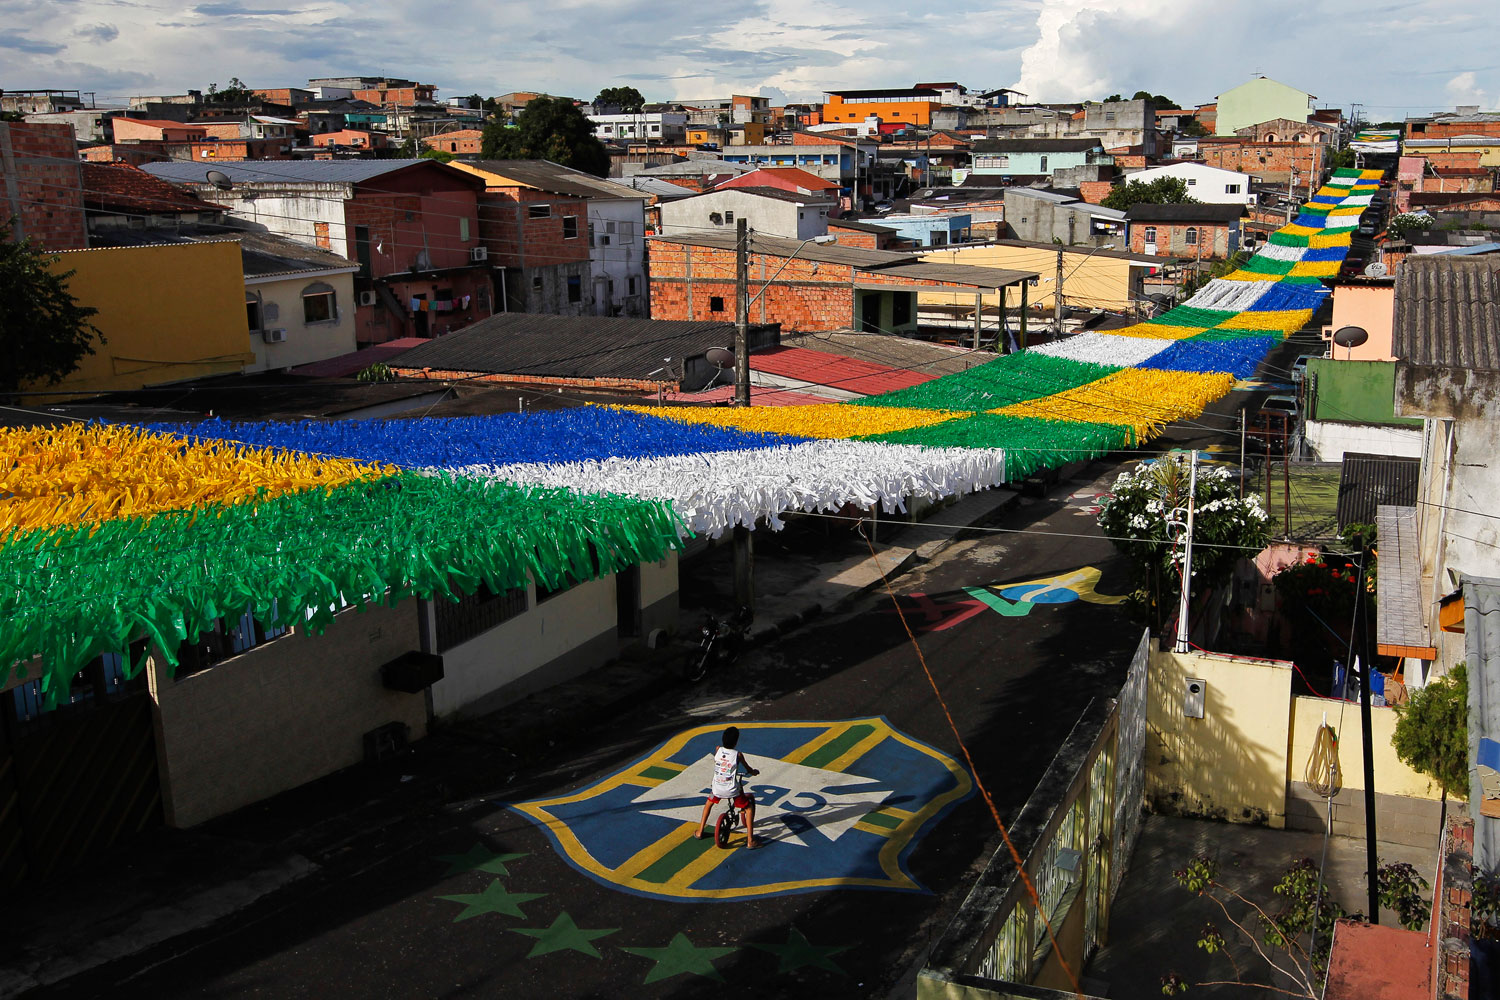 The Third Street of the Alvorada neighborhood, part of Brazil's southernmost state Rio Grande do Sul, is vibrantly decorated for the 2014 World Cup in Manaus, one of the tournament's 12 host cities.